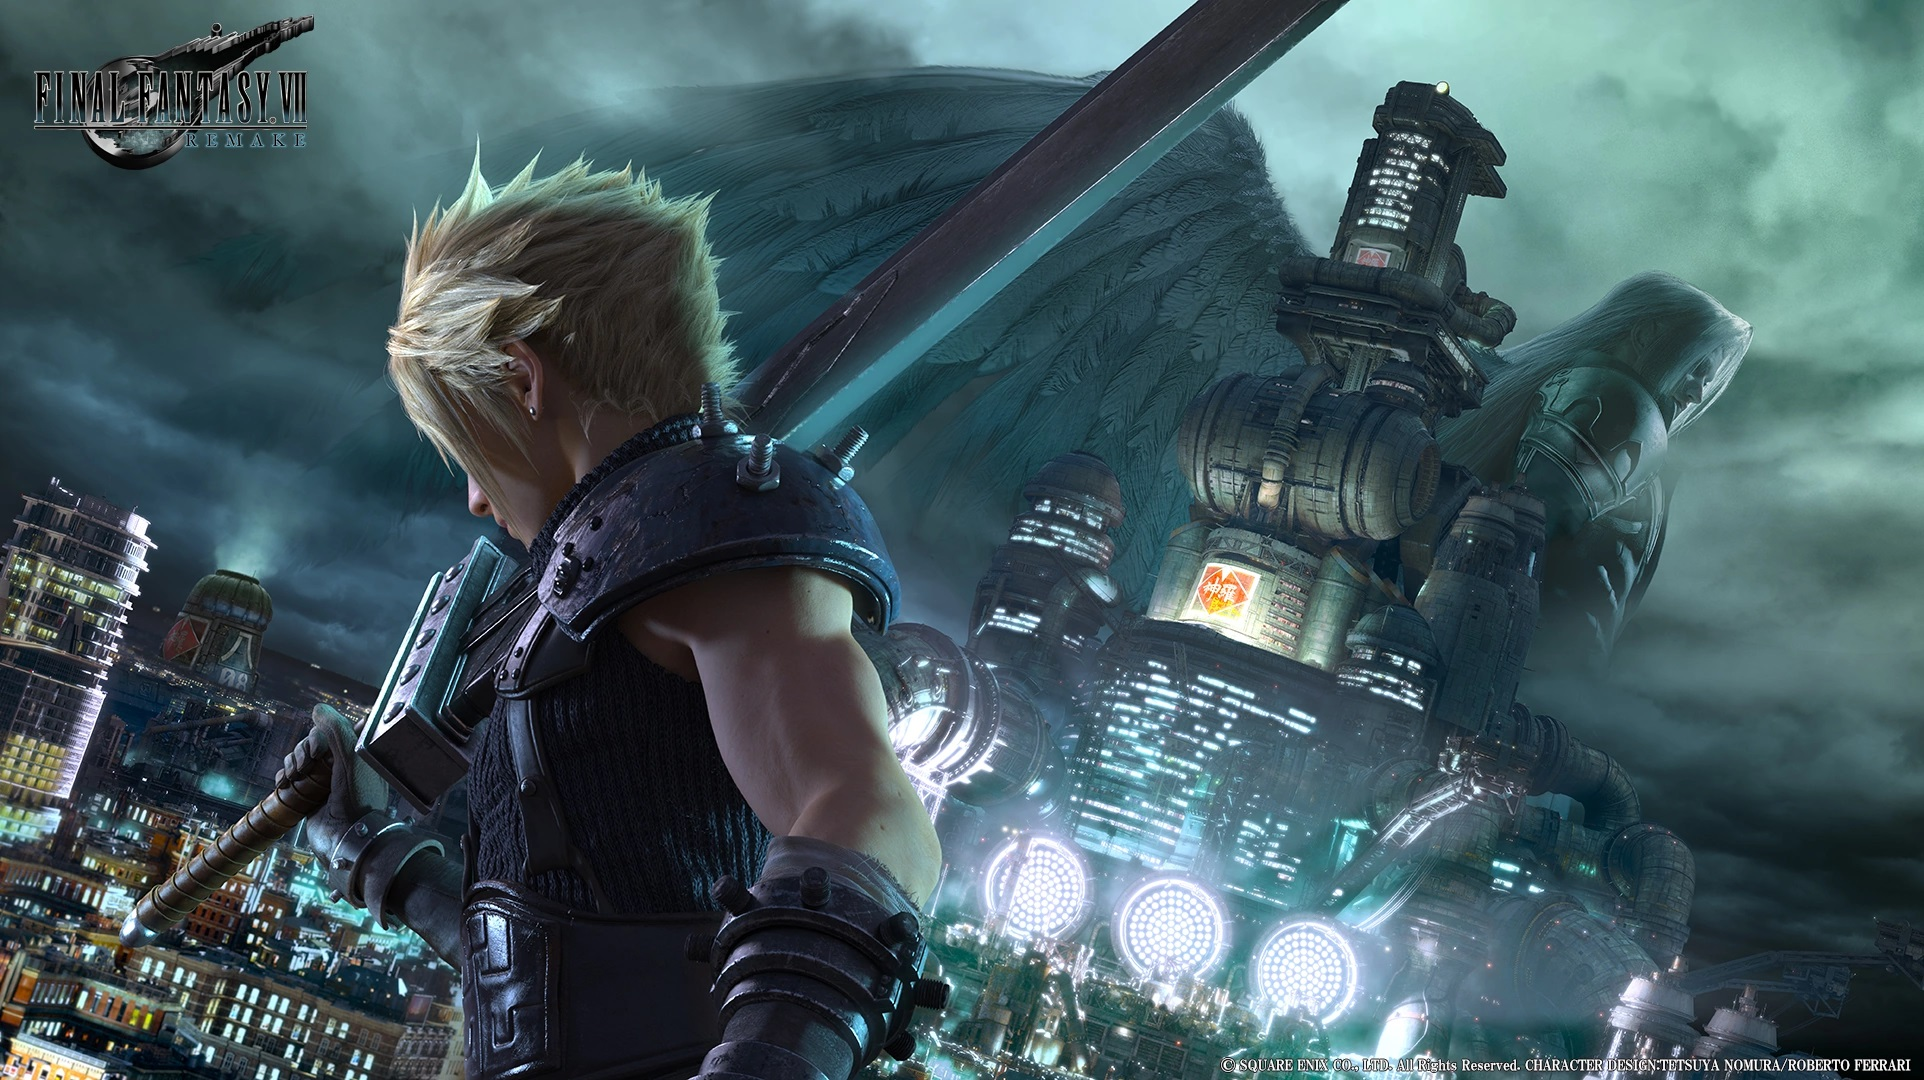 Three Years Out Final Fantasy Vii Remake Still Seems A